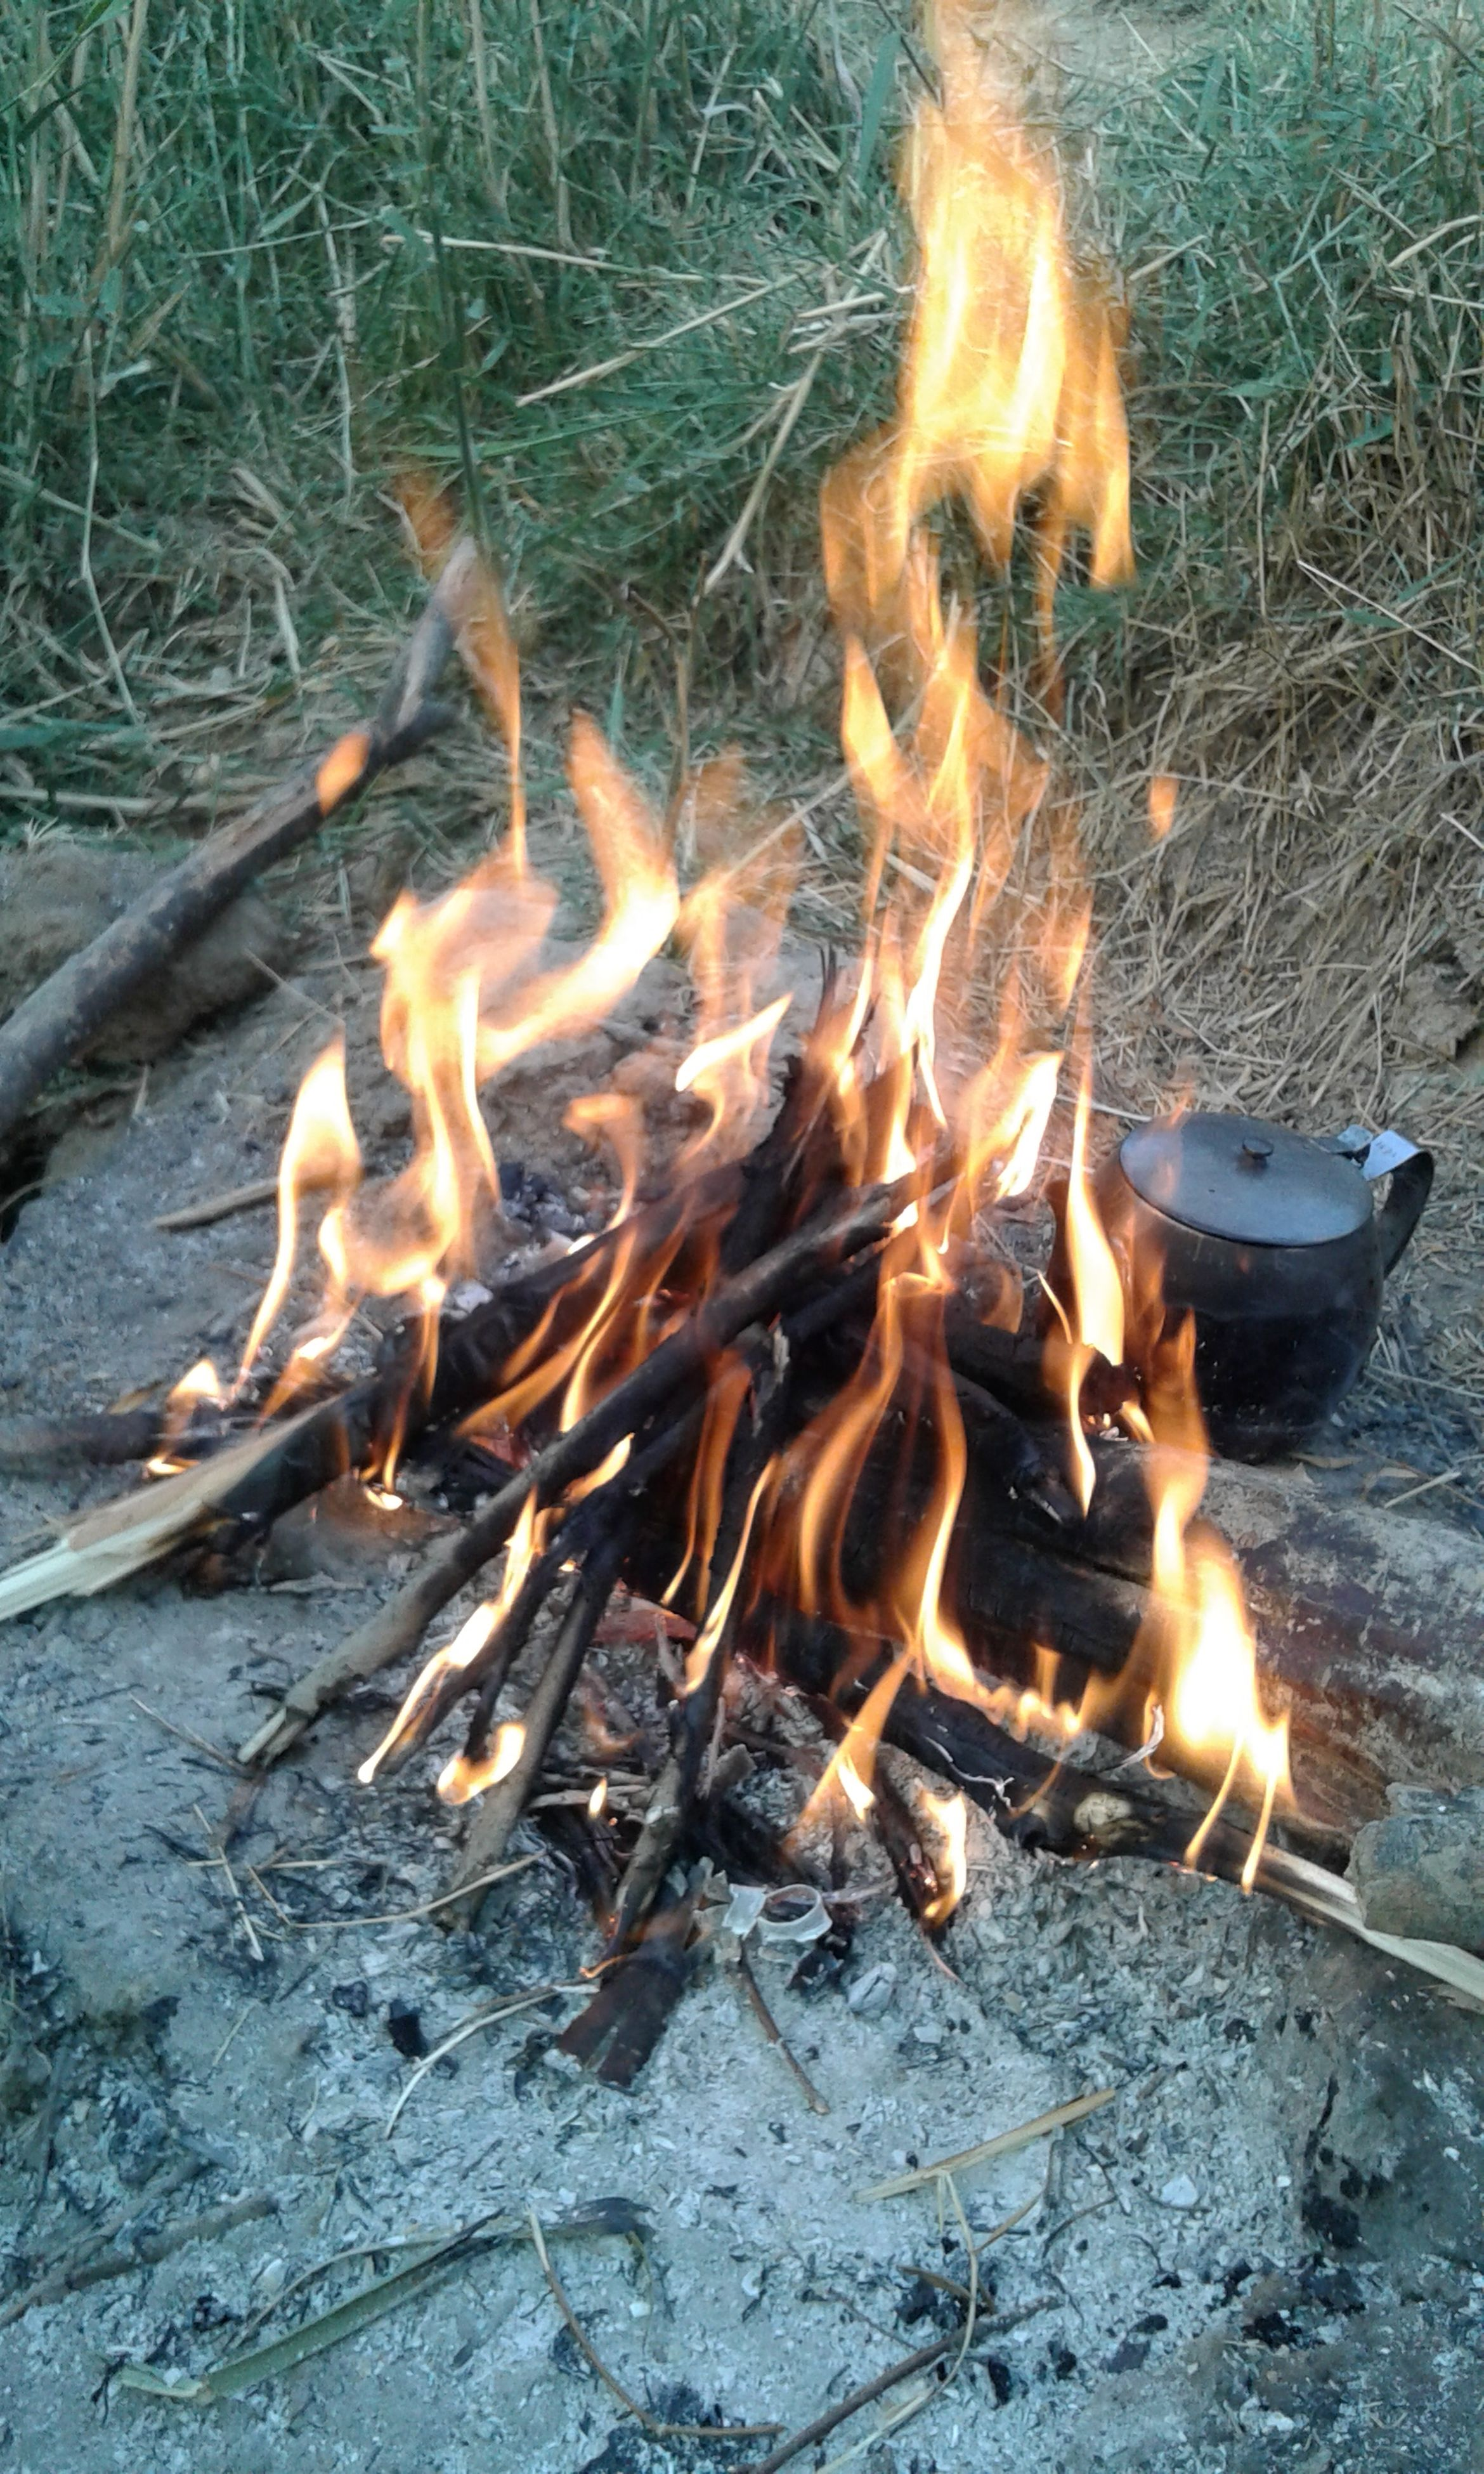 burning, flame, heat - temperature, fire - natural phenomenon, close-up, glowing, motion, bonfire, firewood, outdoors, field, campfire, no people